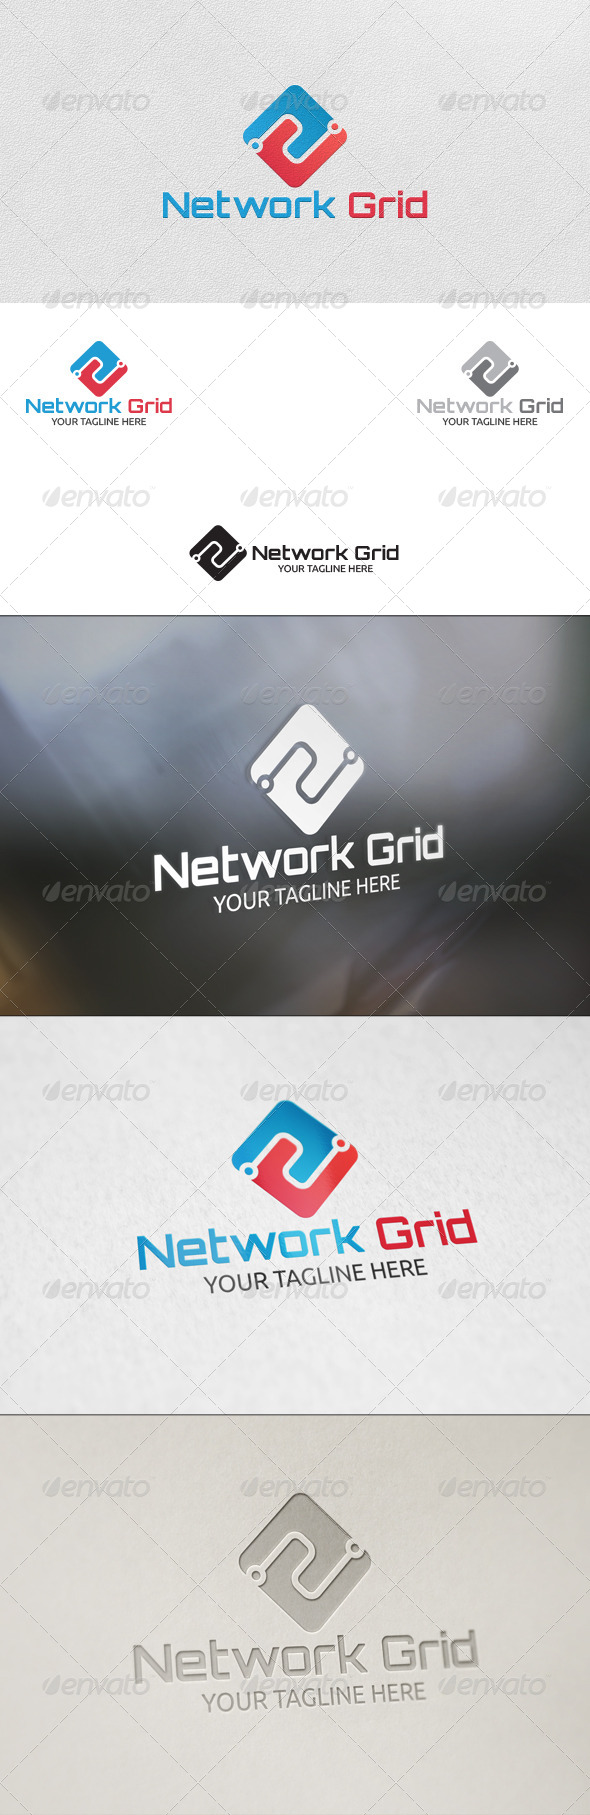 GraphicRiver Network Grid Logo Template 5798159